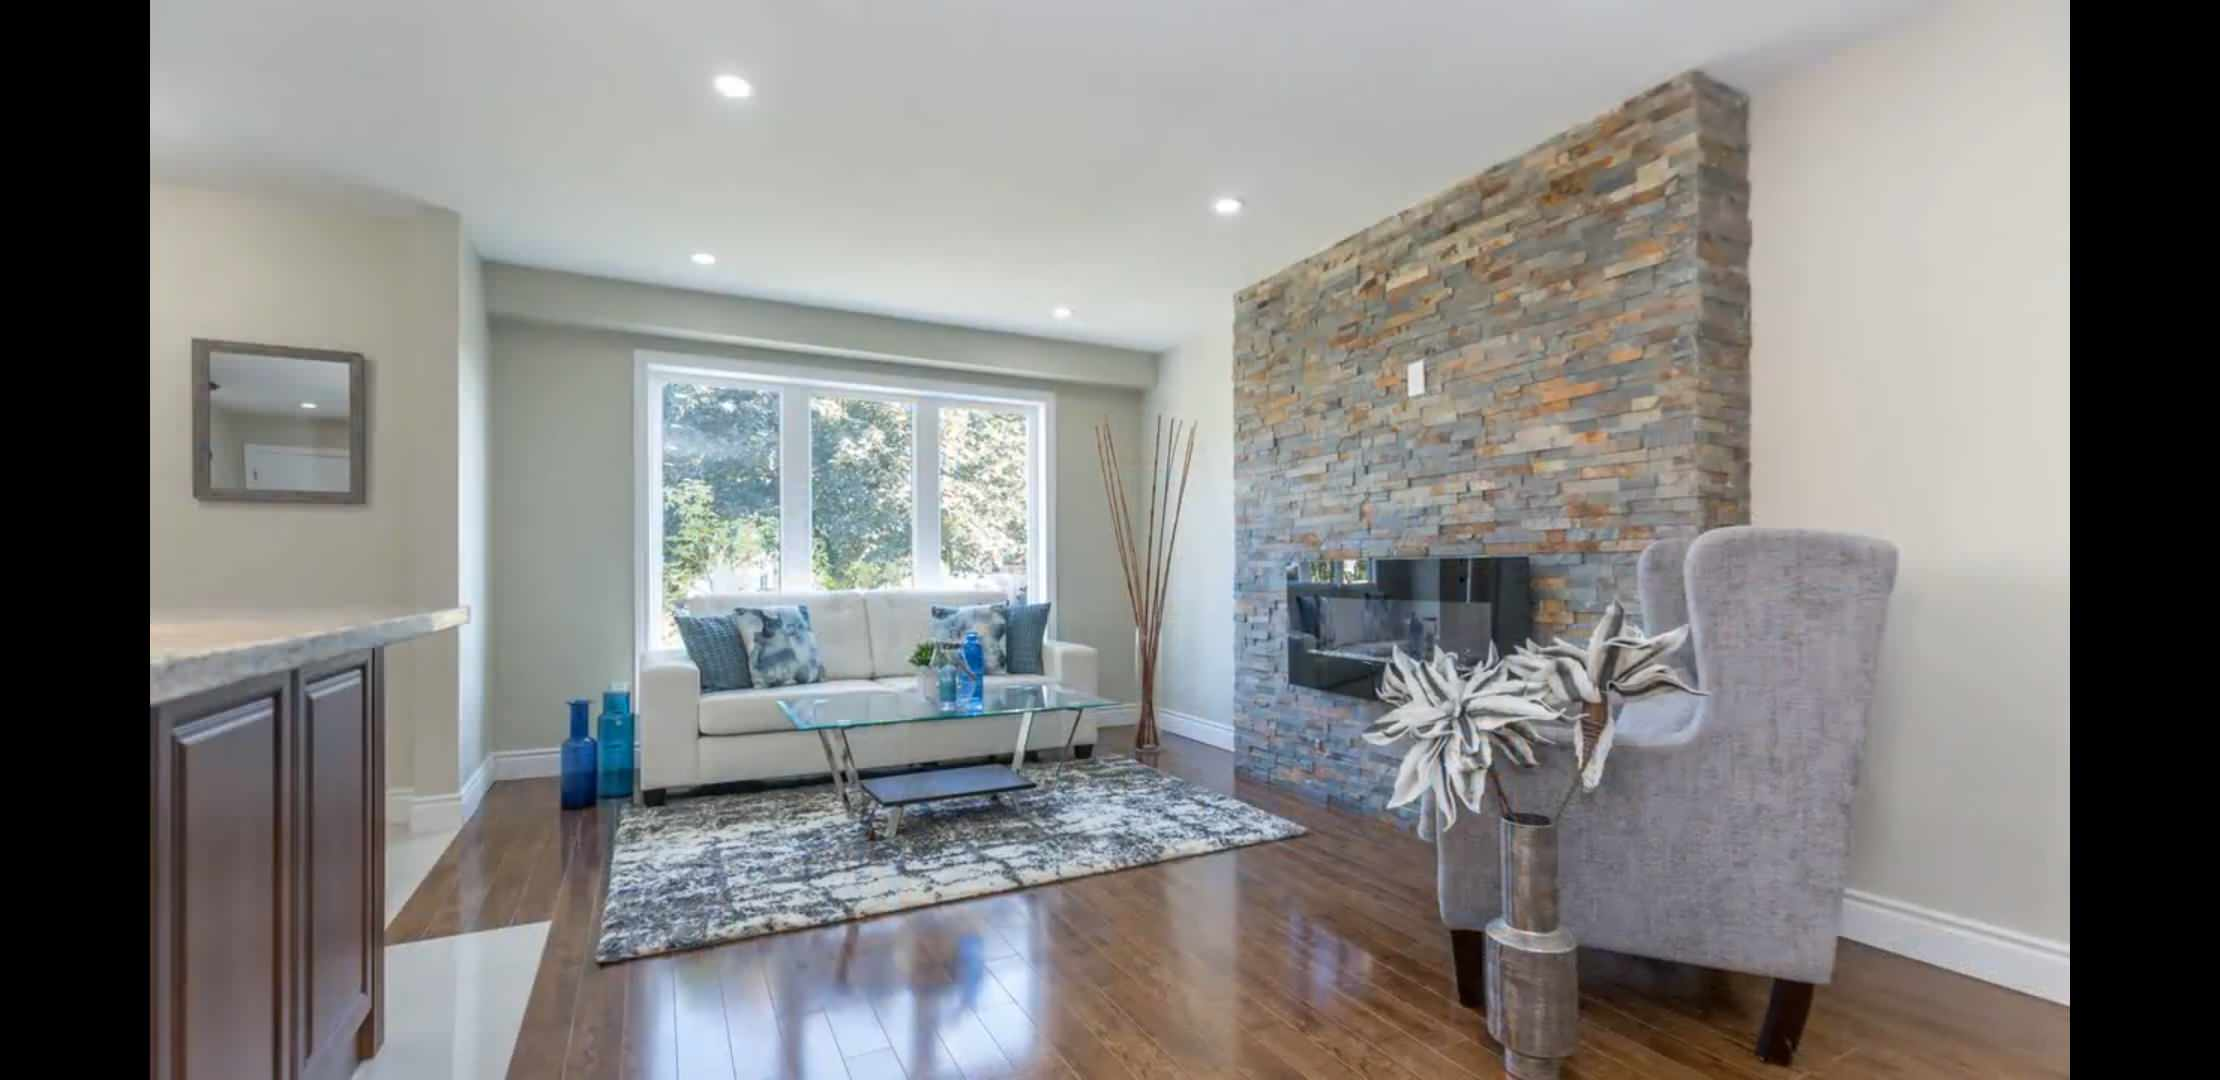 Interior design and remodeling